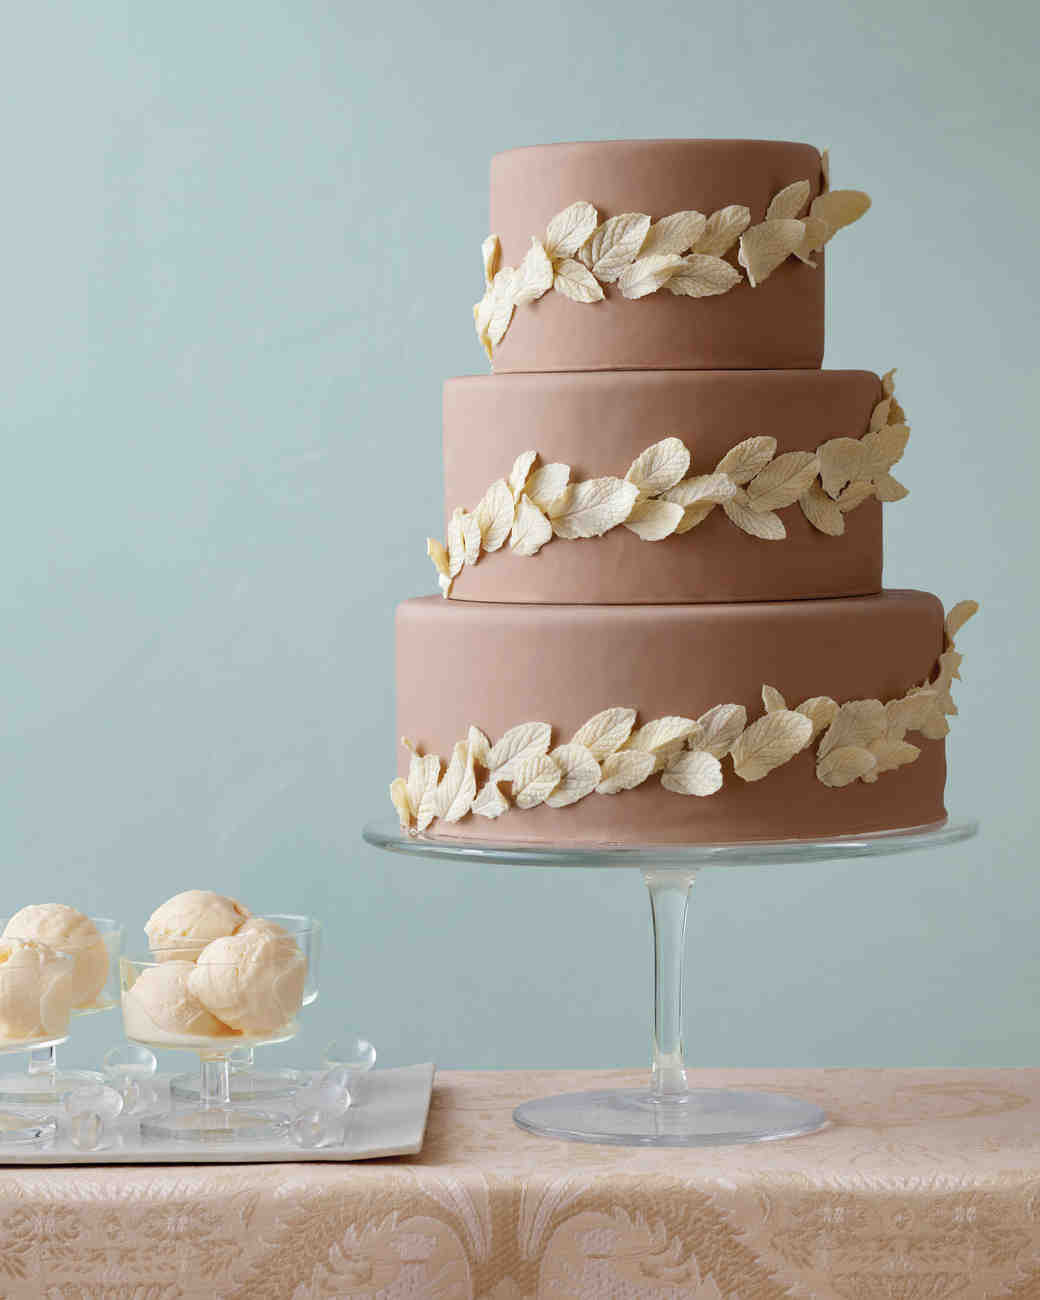 Best ideas about DIY Wedding Cakes . Save or Pin 11 DIY Wedding Cake Ideas That Will Transform Your Tiers Now.